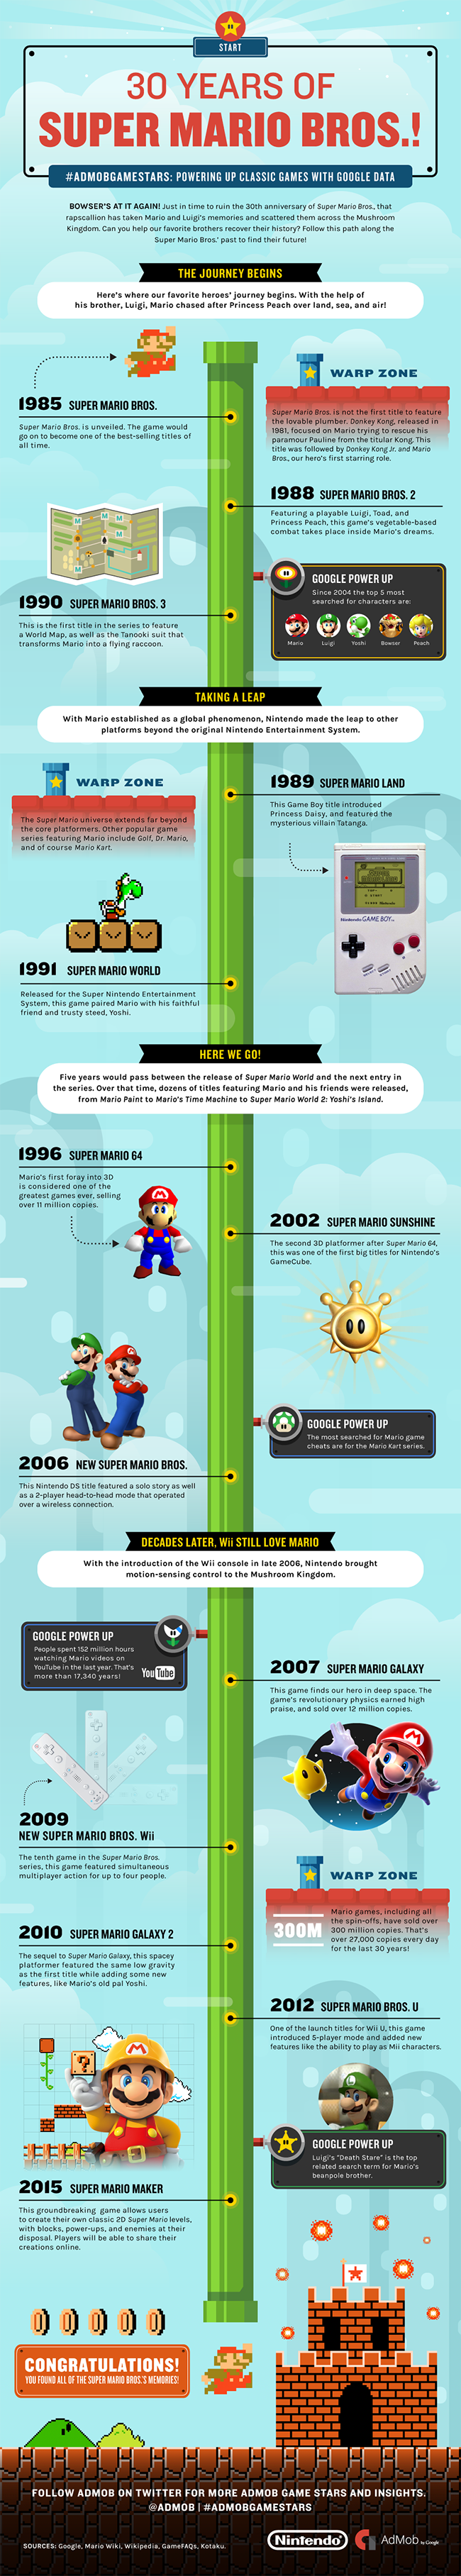 The Evolution Of Super Mario Brothers - Enchanted Little World